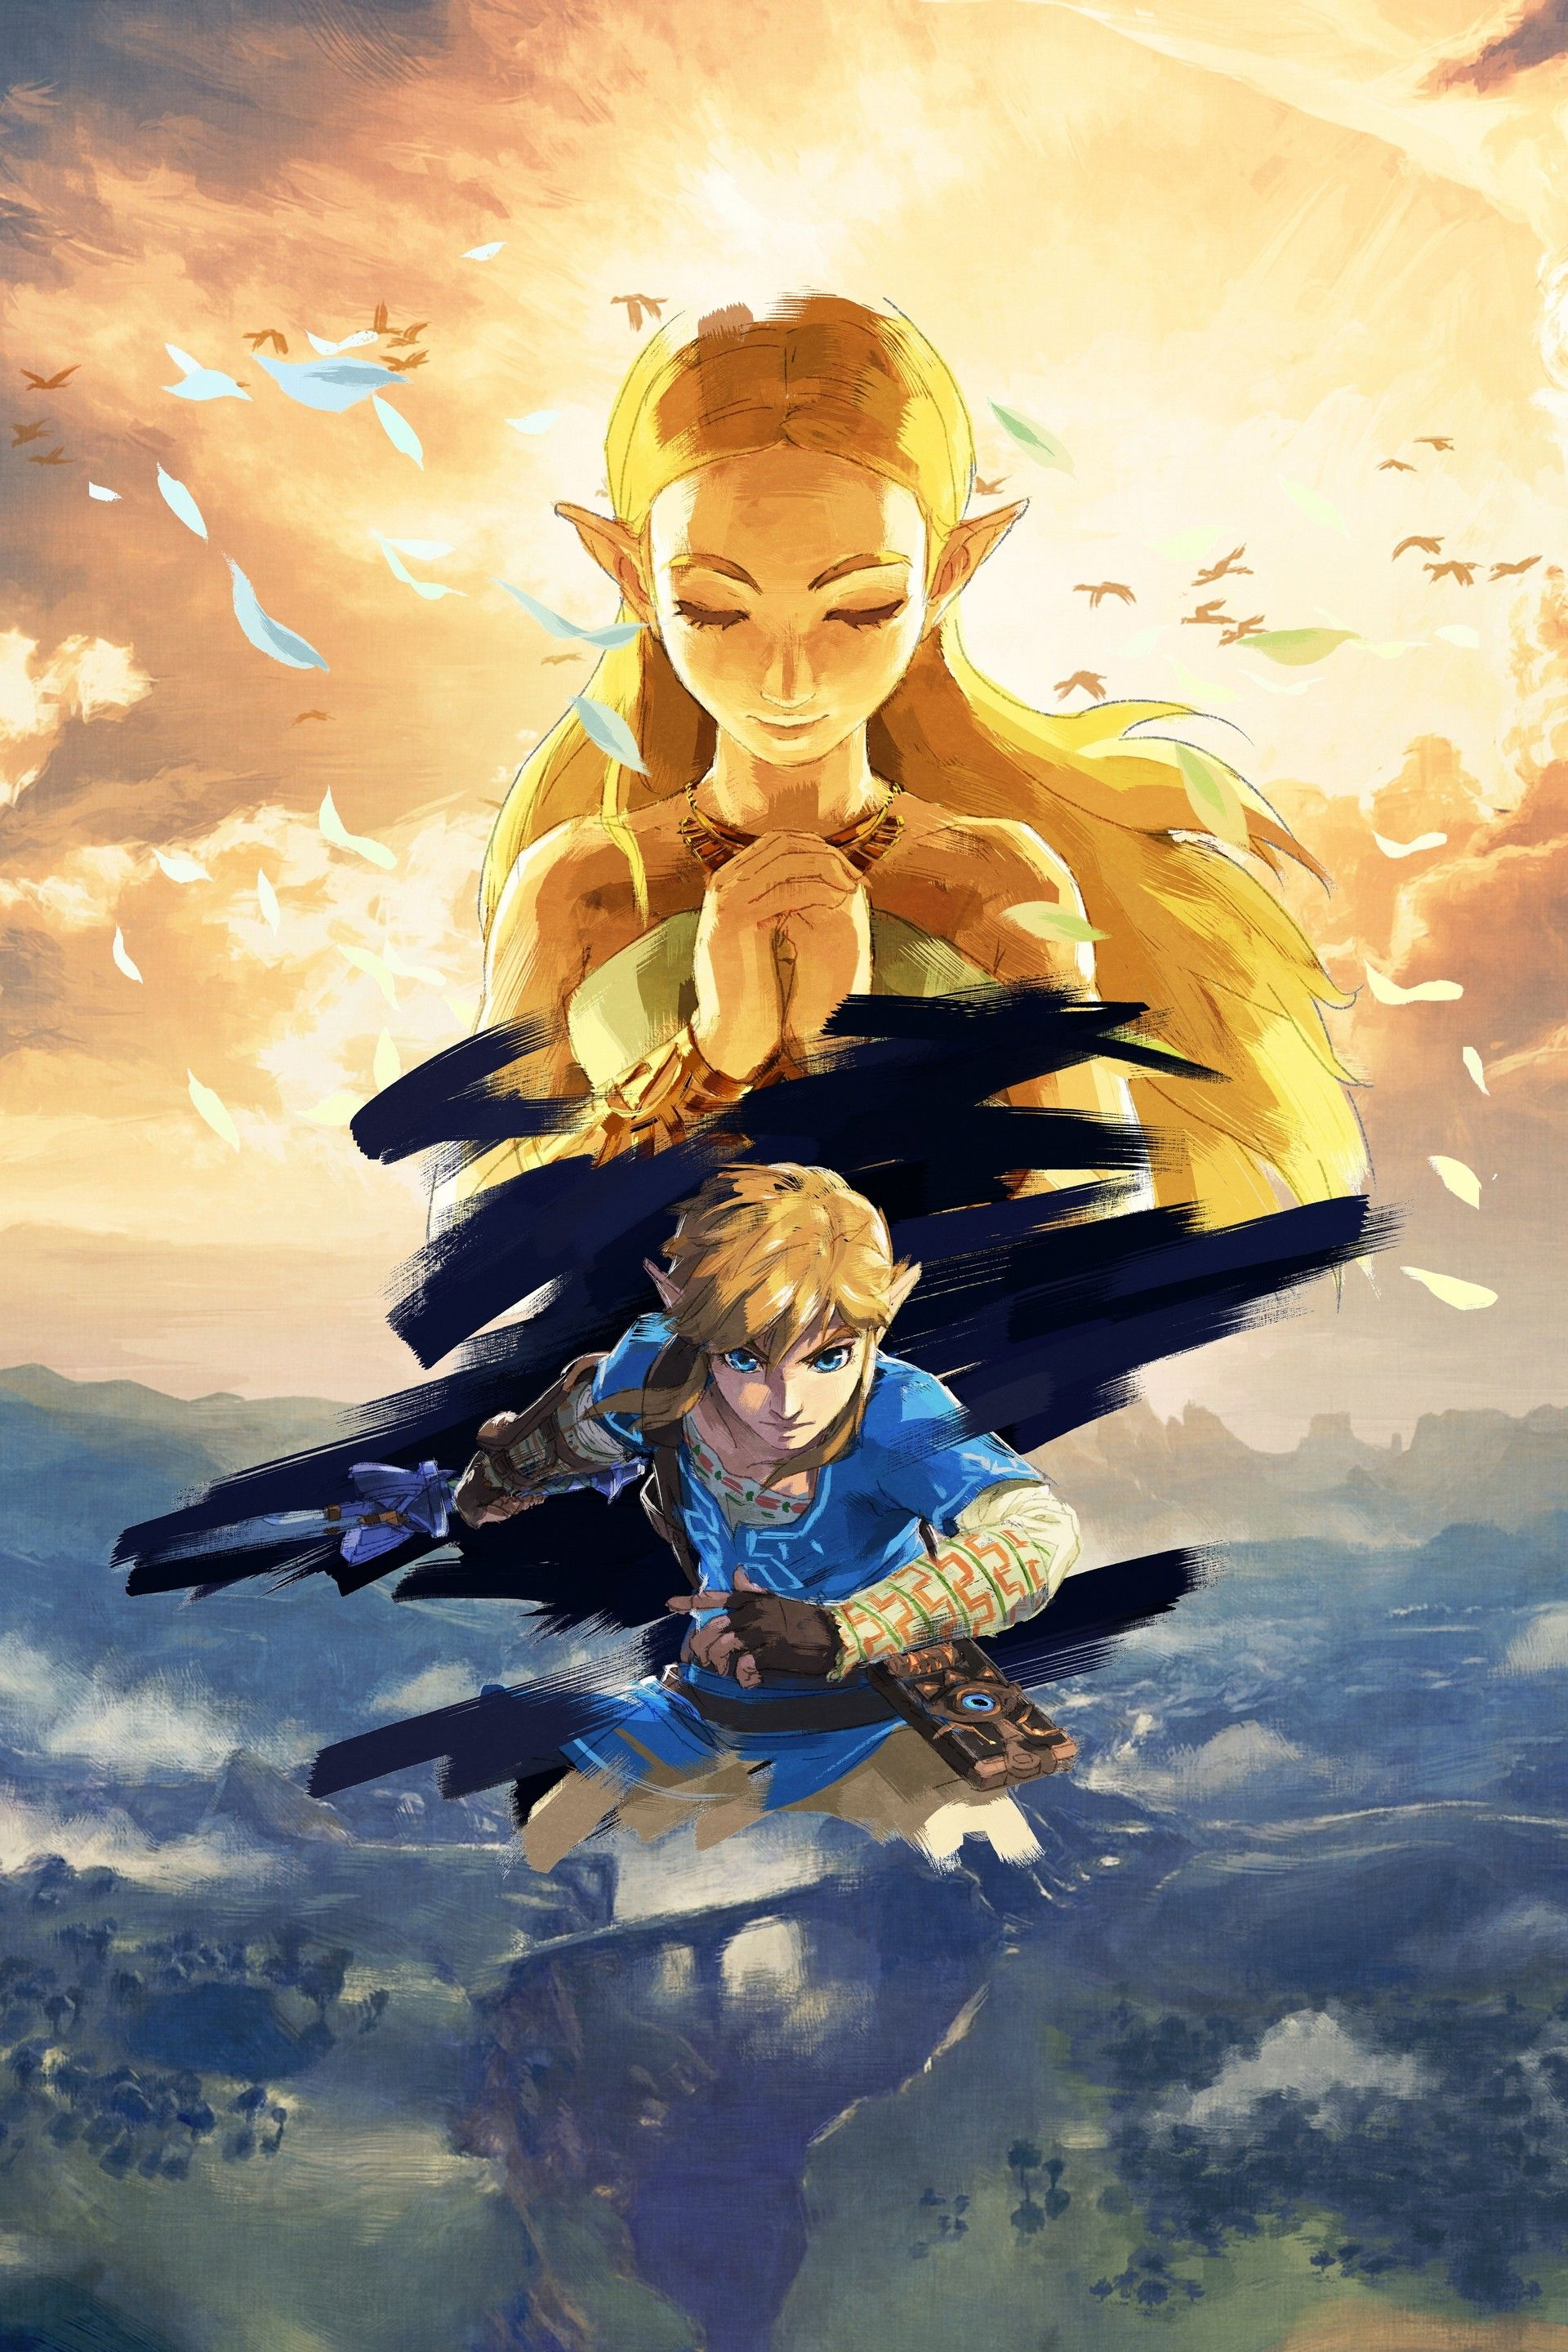 Princess Zelda Phone Wallpapers Top Free Princess Zelda Phone Backgrounds Wallpaperaccess